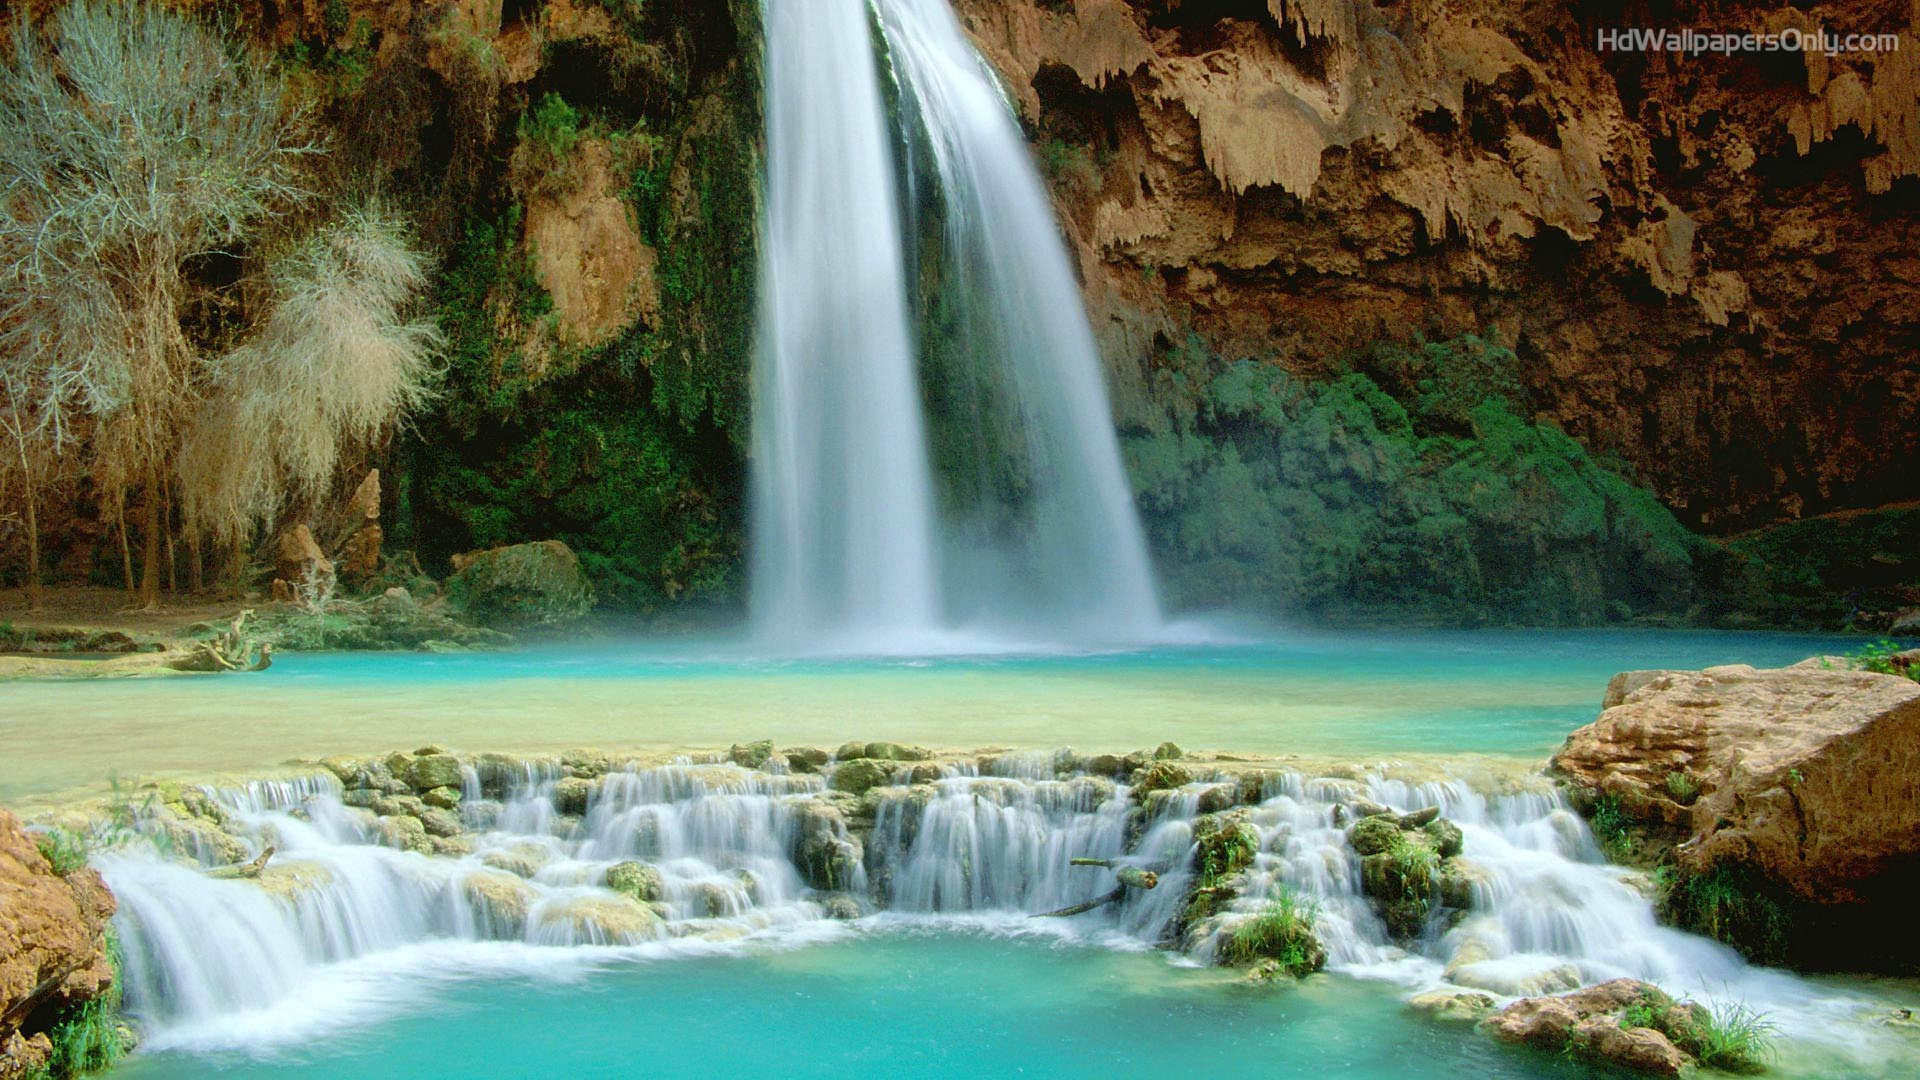 Waterfall Wallpapers HD | Hd Wallpapers OnlyHD Wallpapers Only